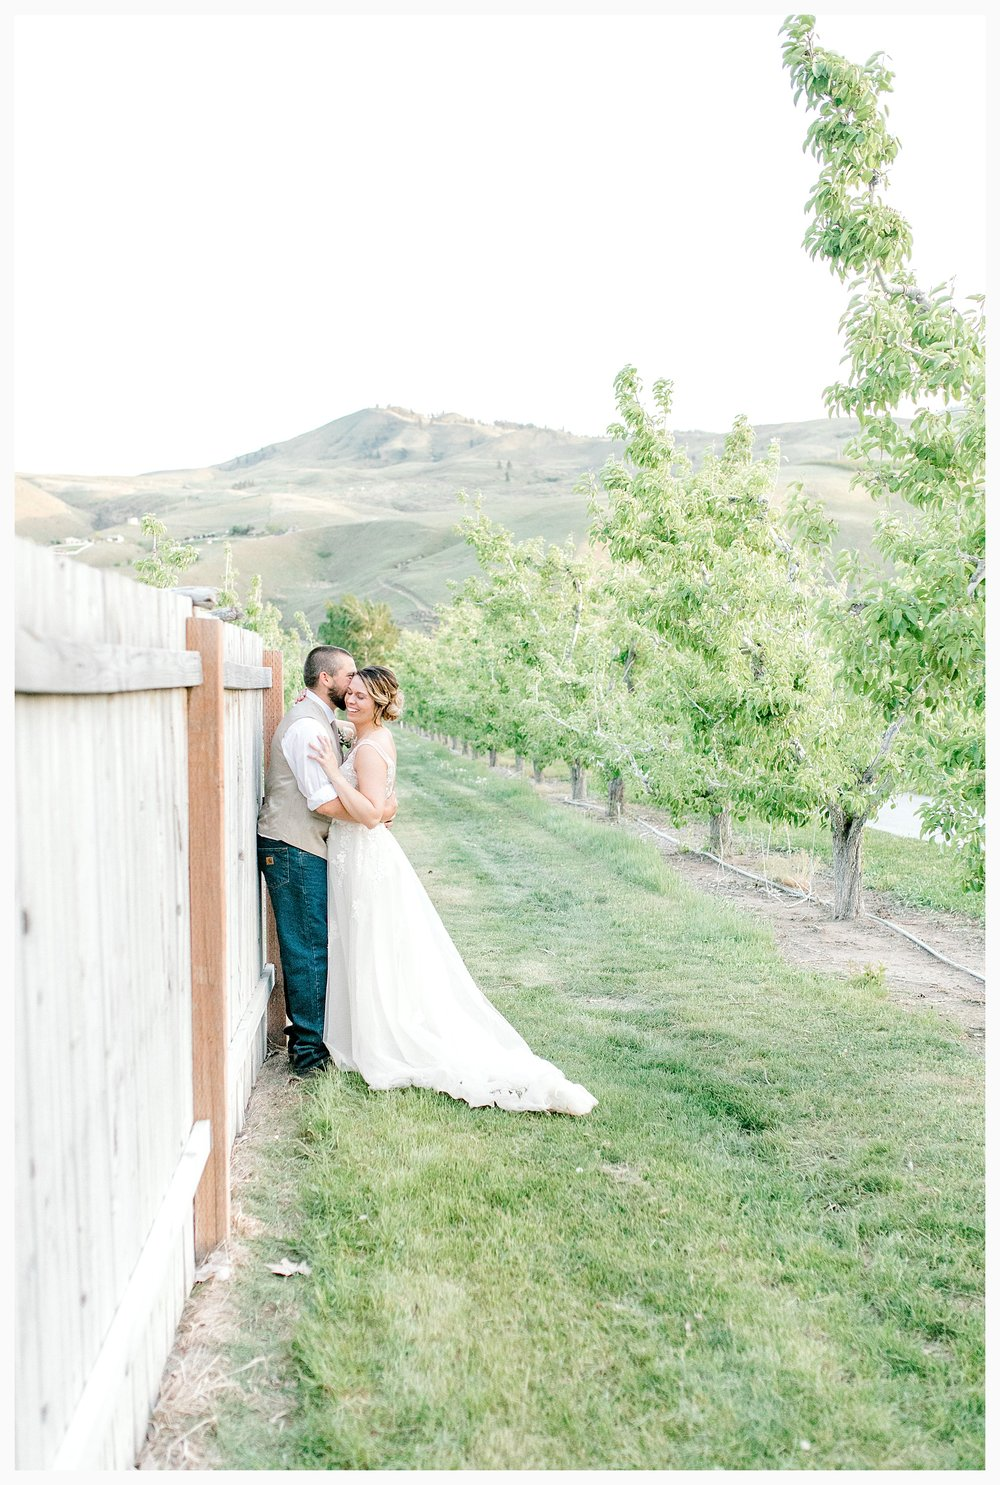 Rustic barn wedding in Wenatchee Washington at Sunshine Ranch on Easy Street, Emma Rose Company Seattle PNW Light and Airy Wedding Photographer_0142.jpg